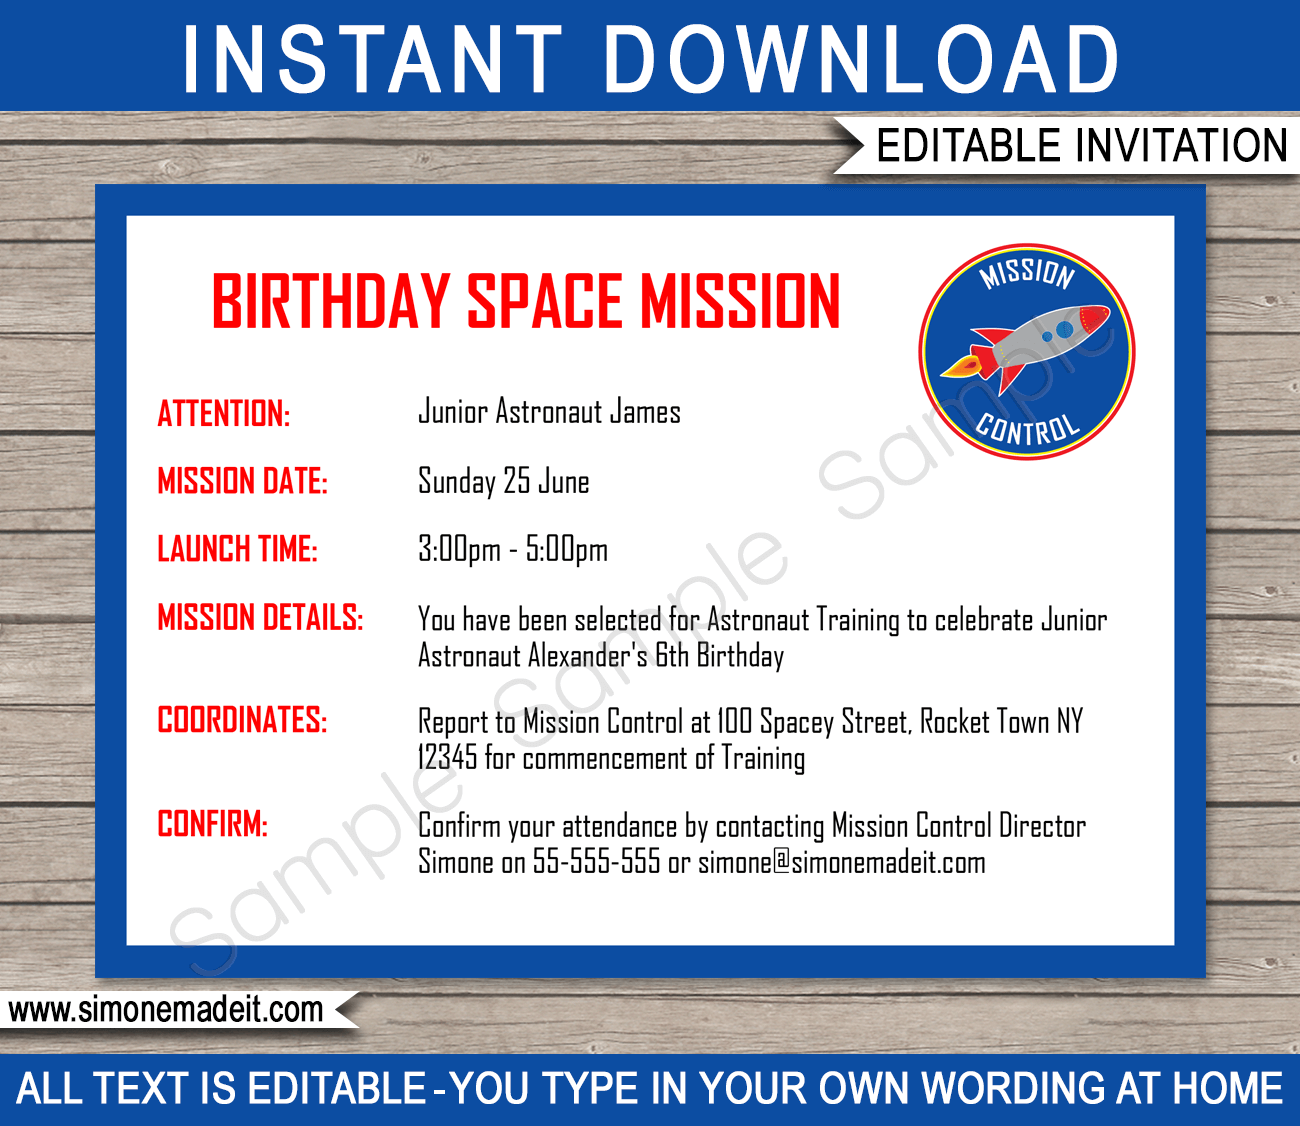 Nerf War Party Invitations Free Printable Invitation Template - Party invitation template: nerf war party invitation template